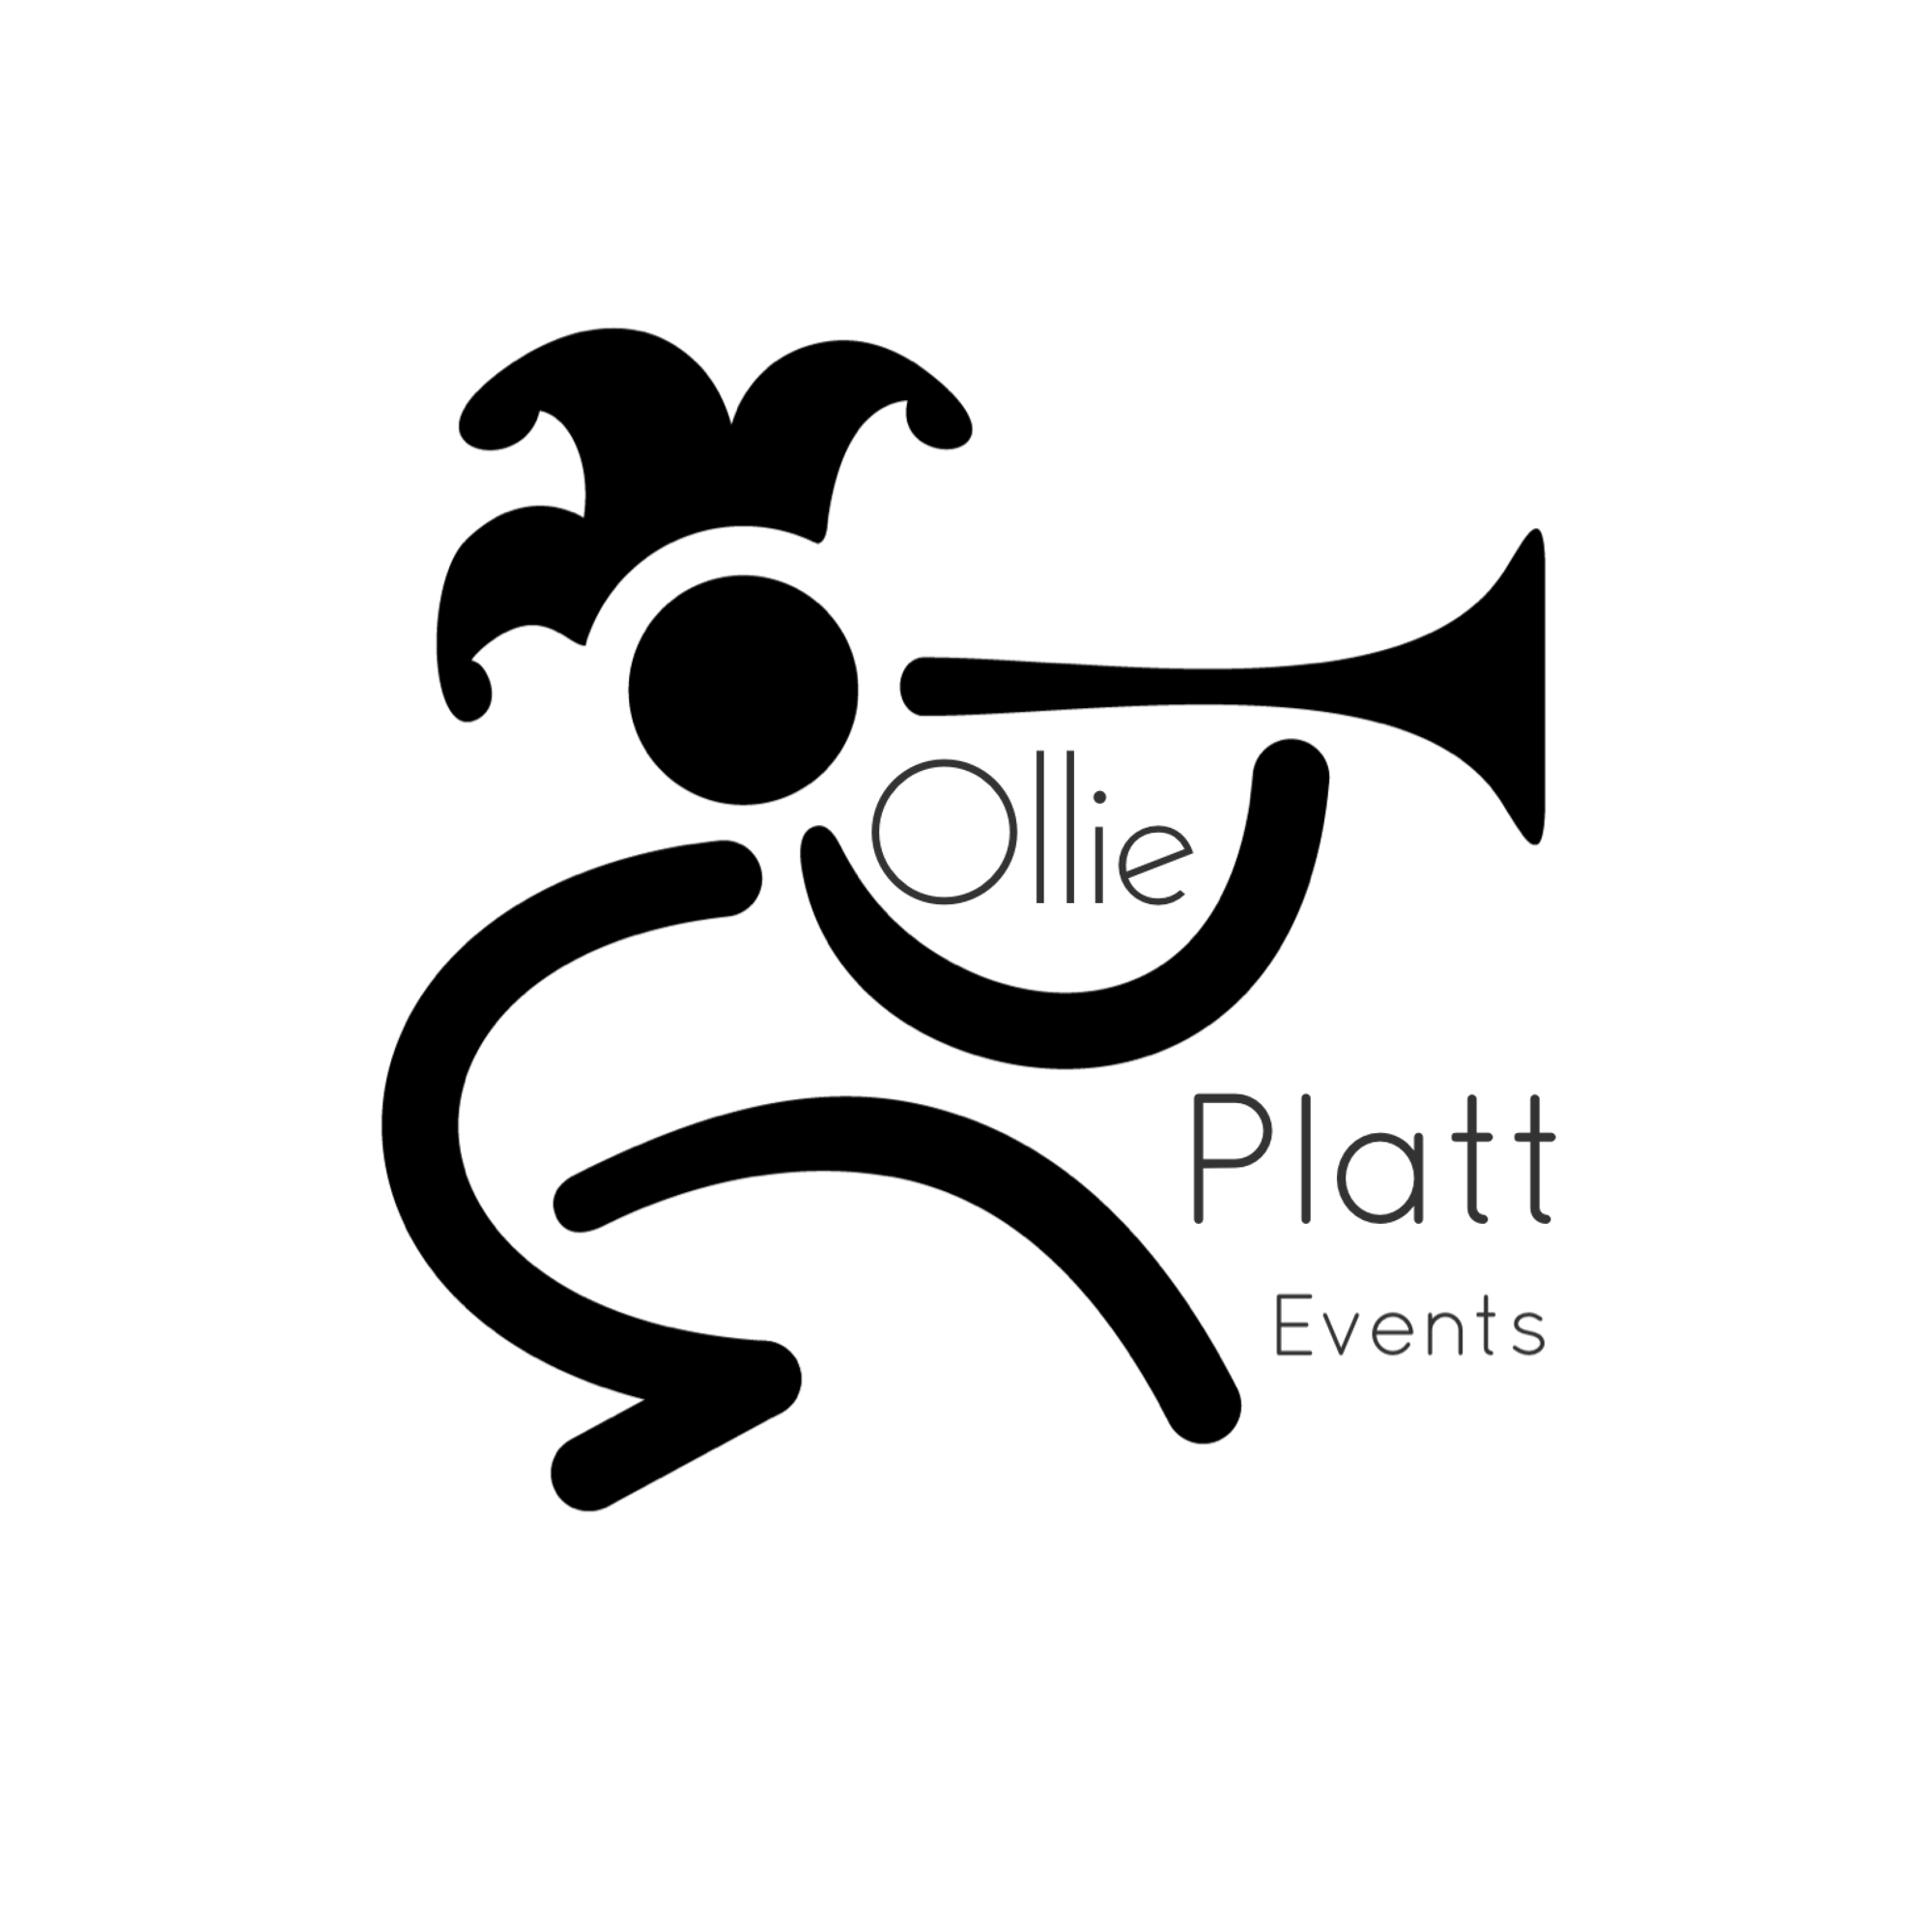 OLLIE PLATT EVENTS